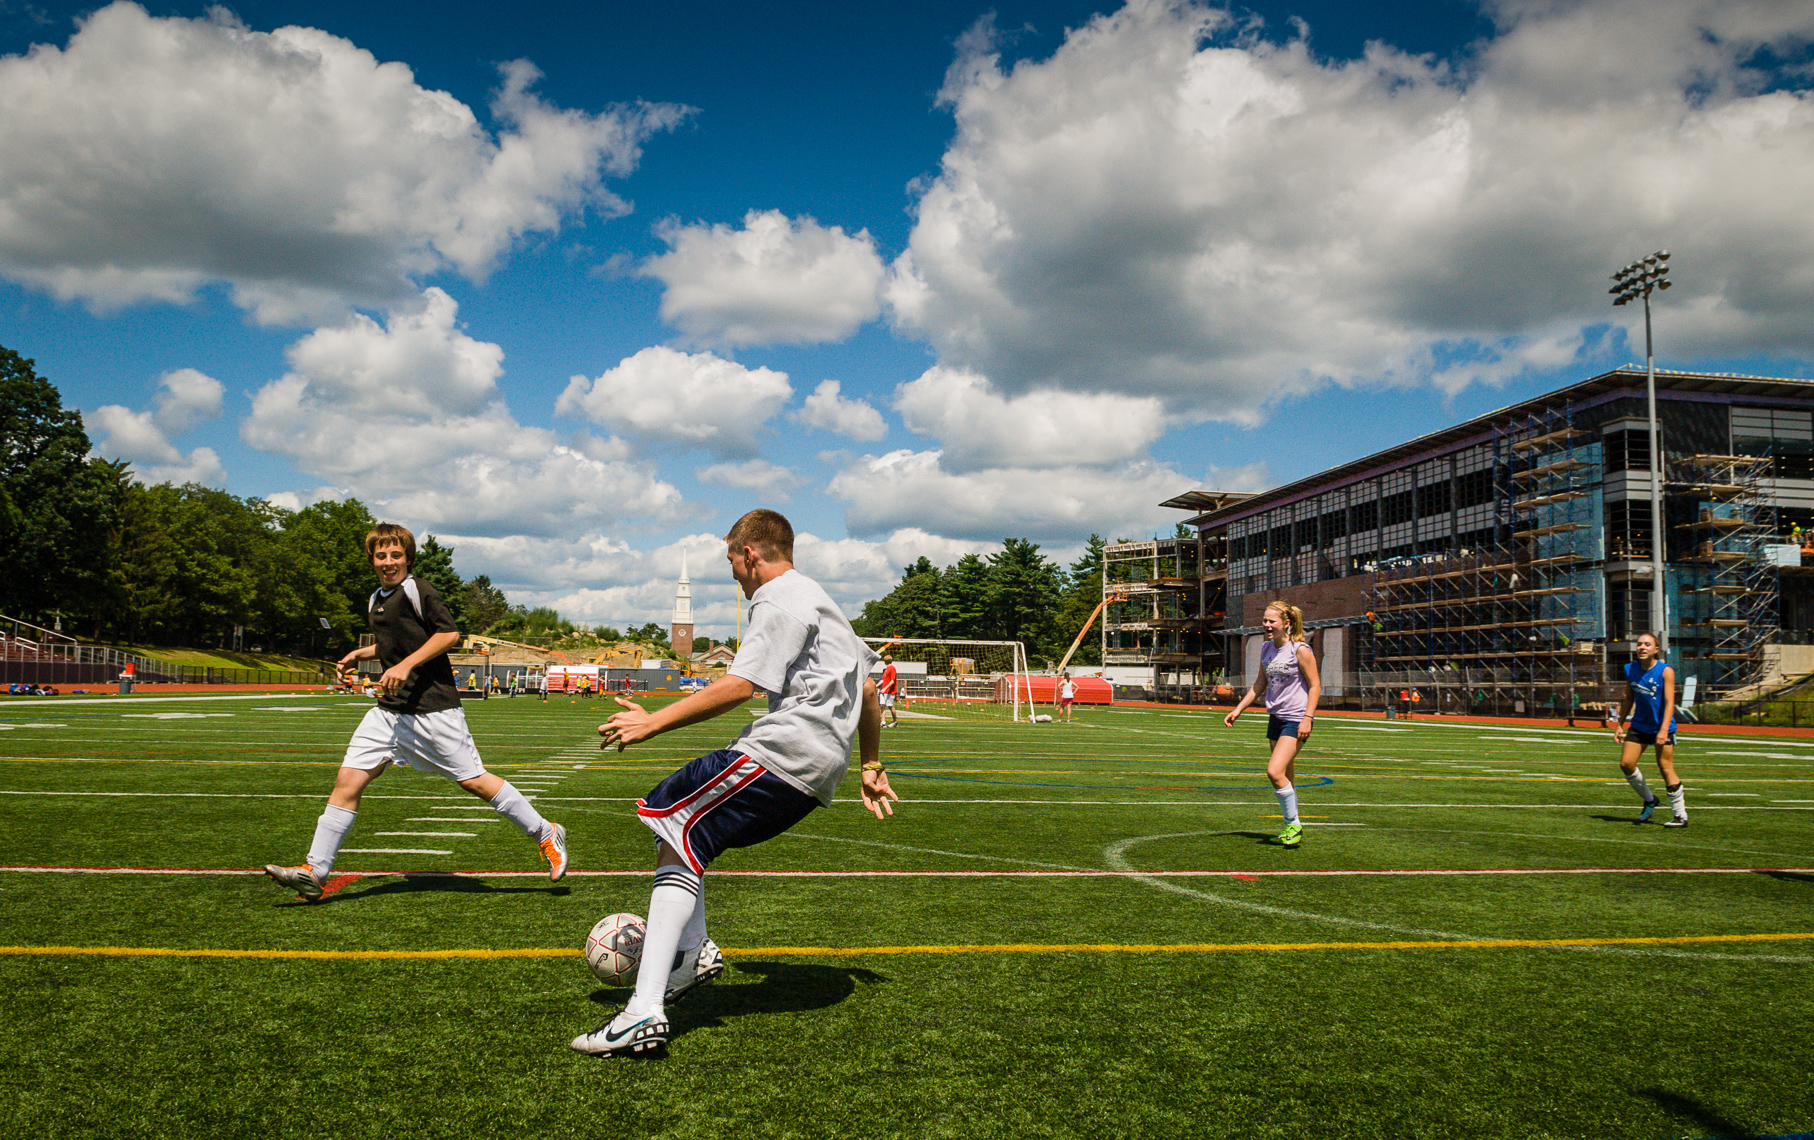 WPI | Higher Education Photography | Campus Life | Soccer